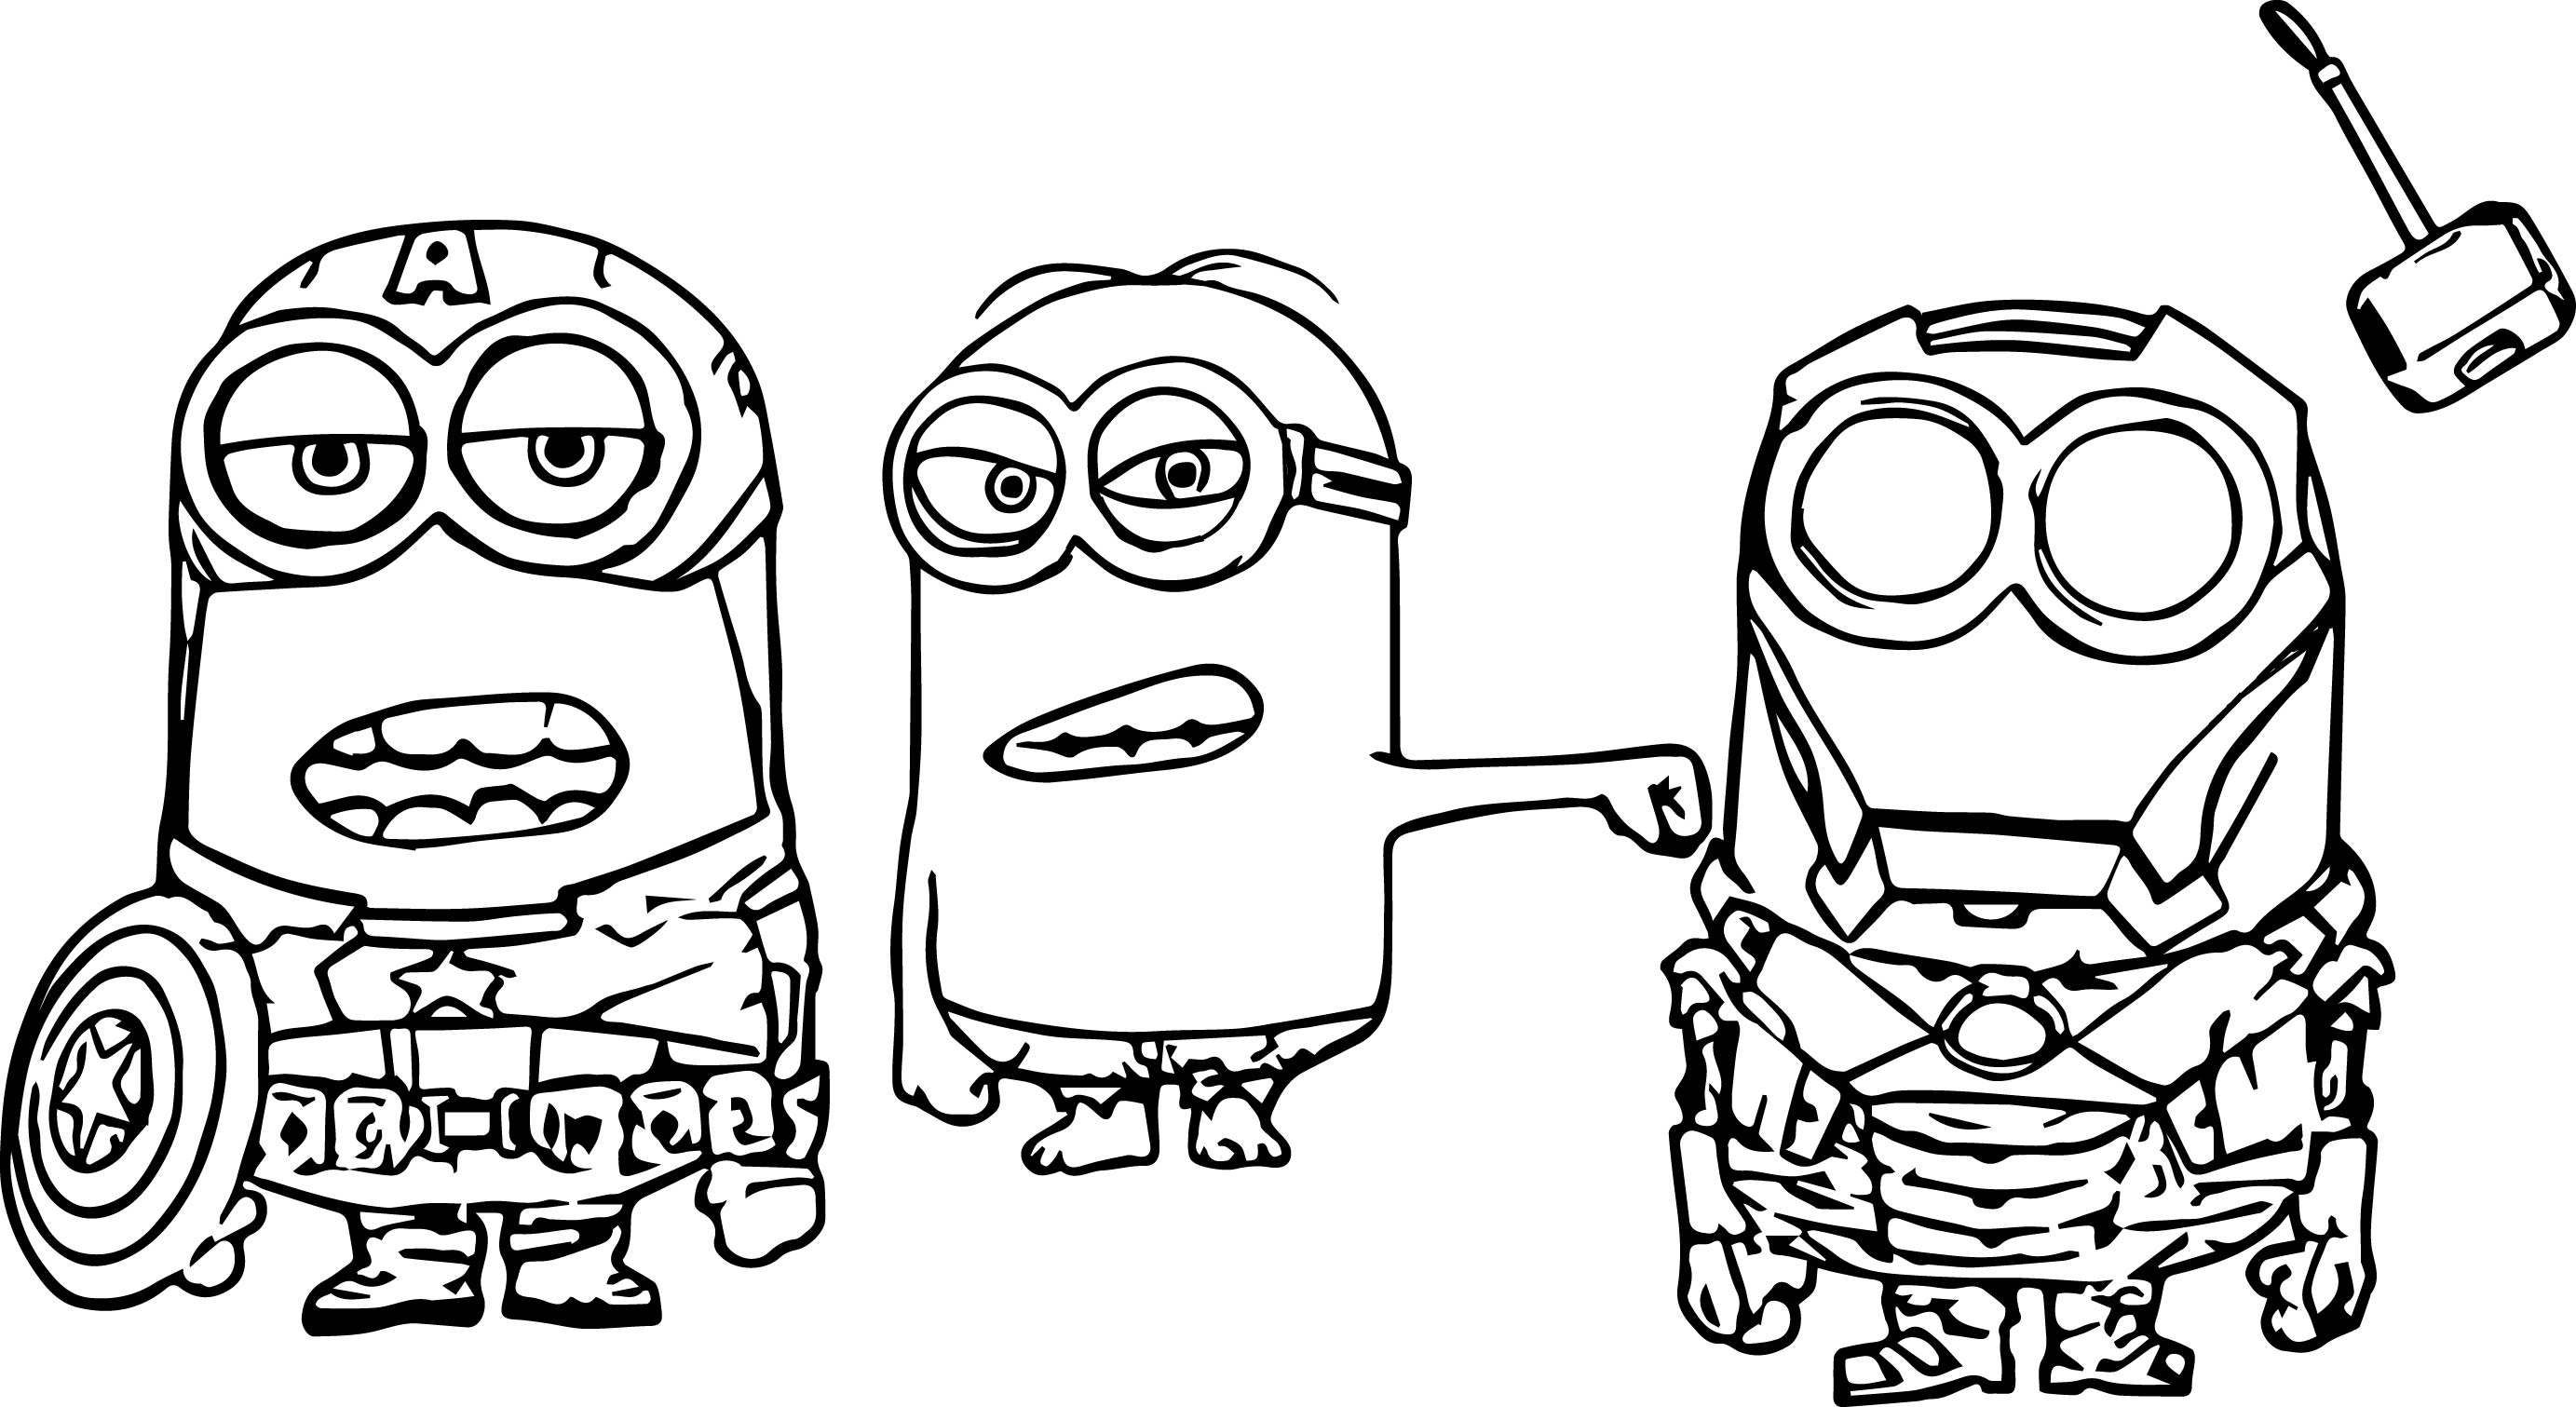 Super Hero Coloring Pages Stunning Minion Super Heroes Coloring Page  Wecoloringpage Inspiration Design